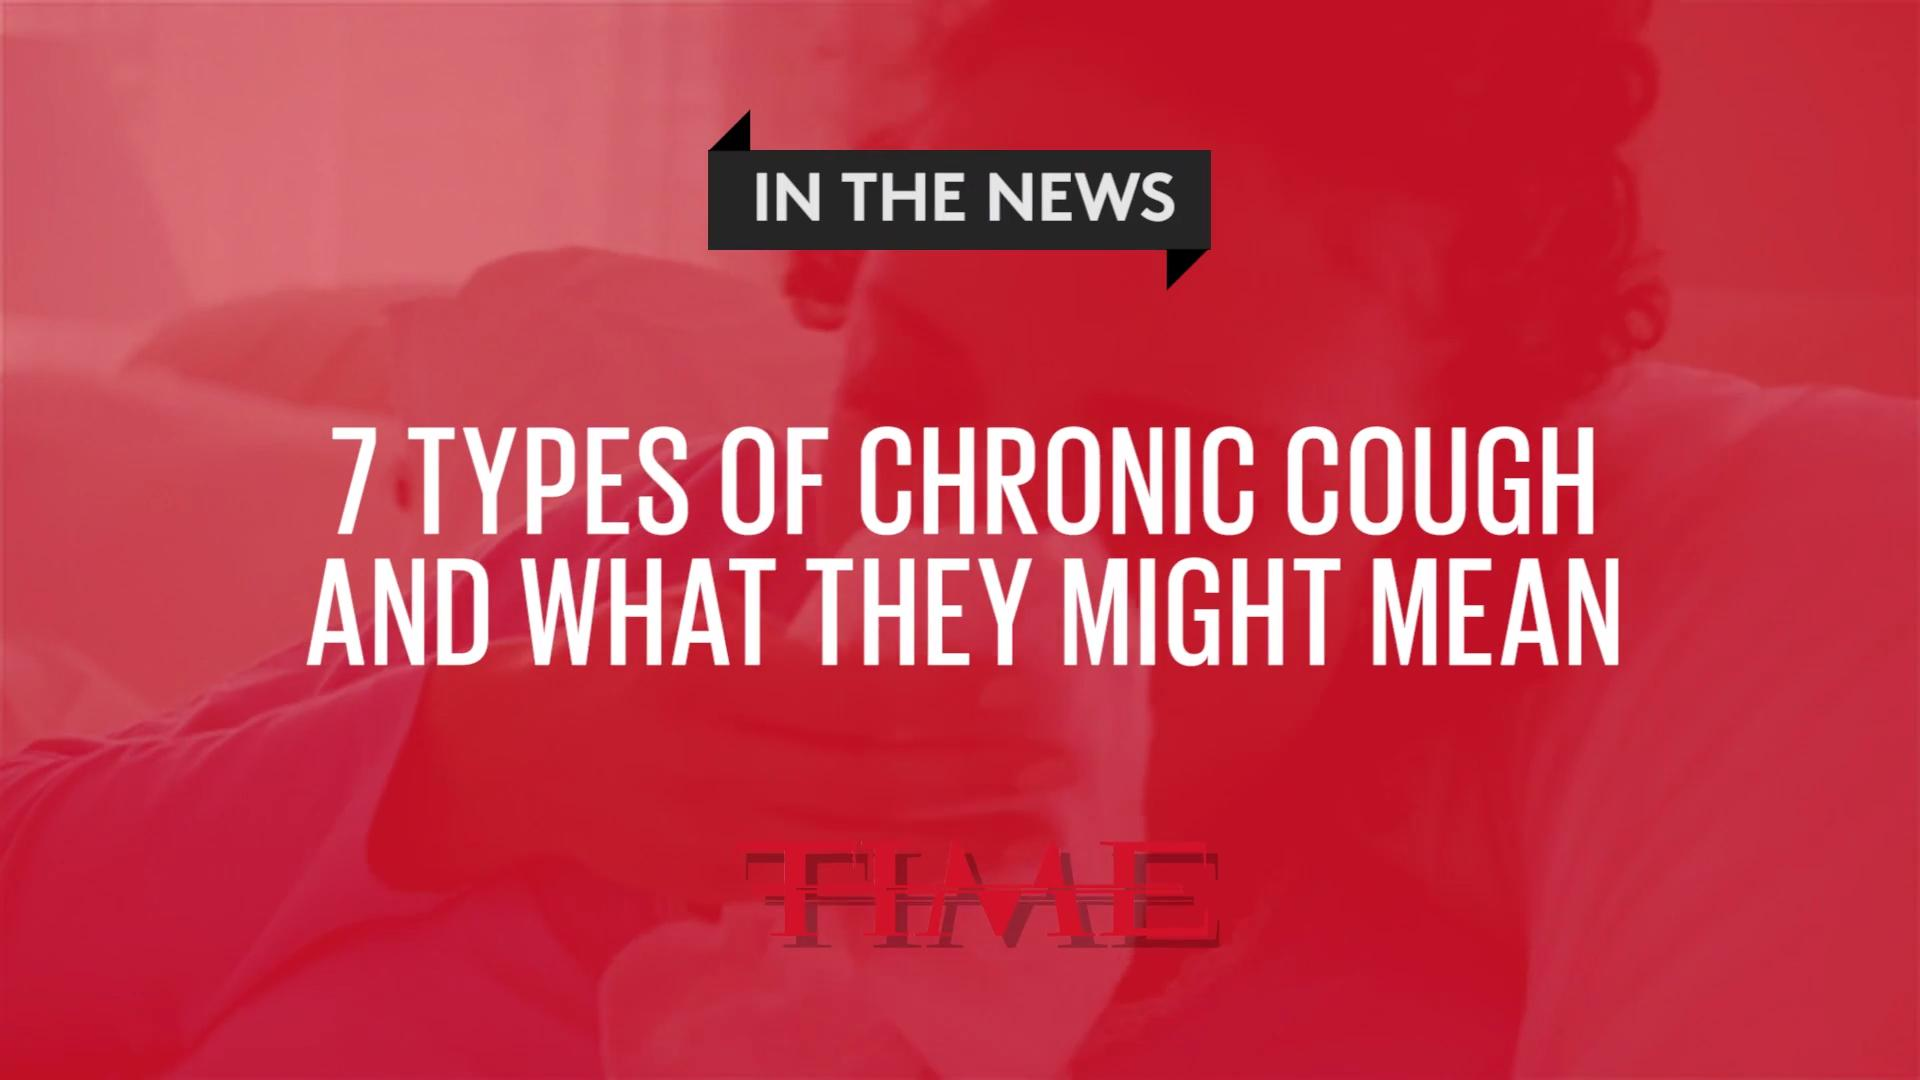 7 Kinds of Coughs and What They Might Mean - Health